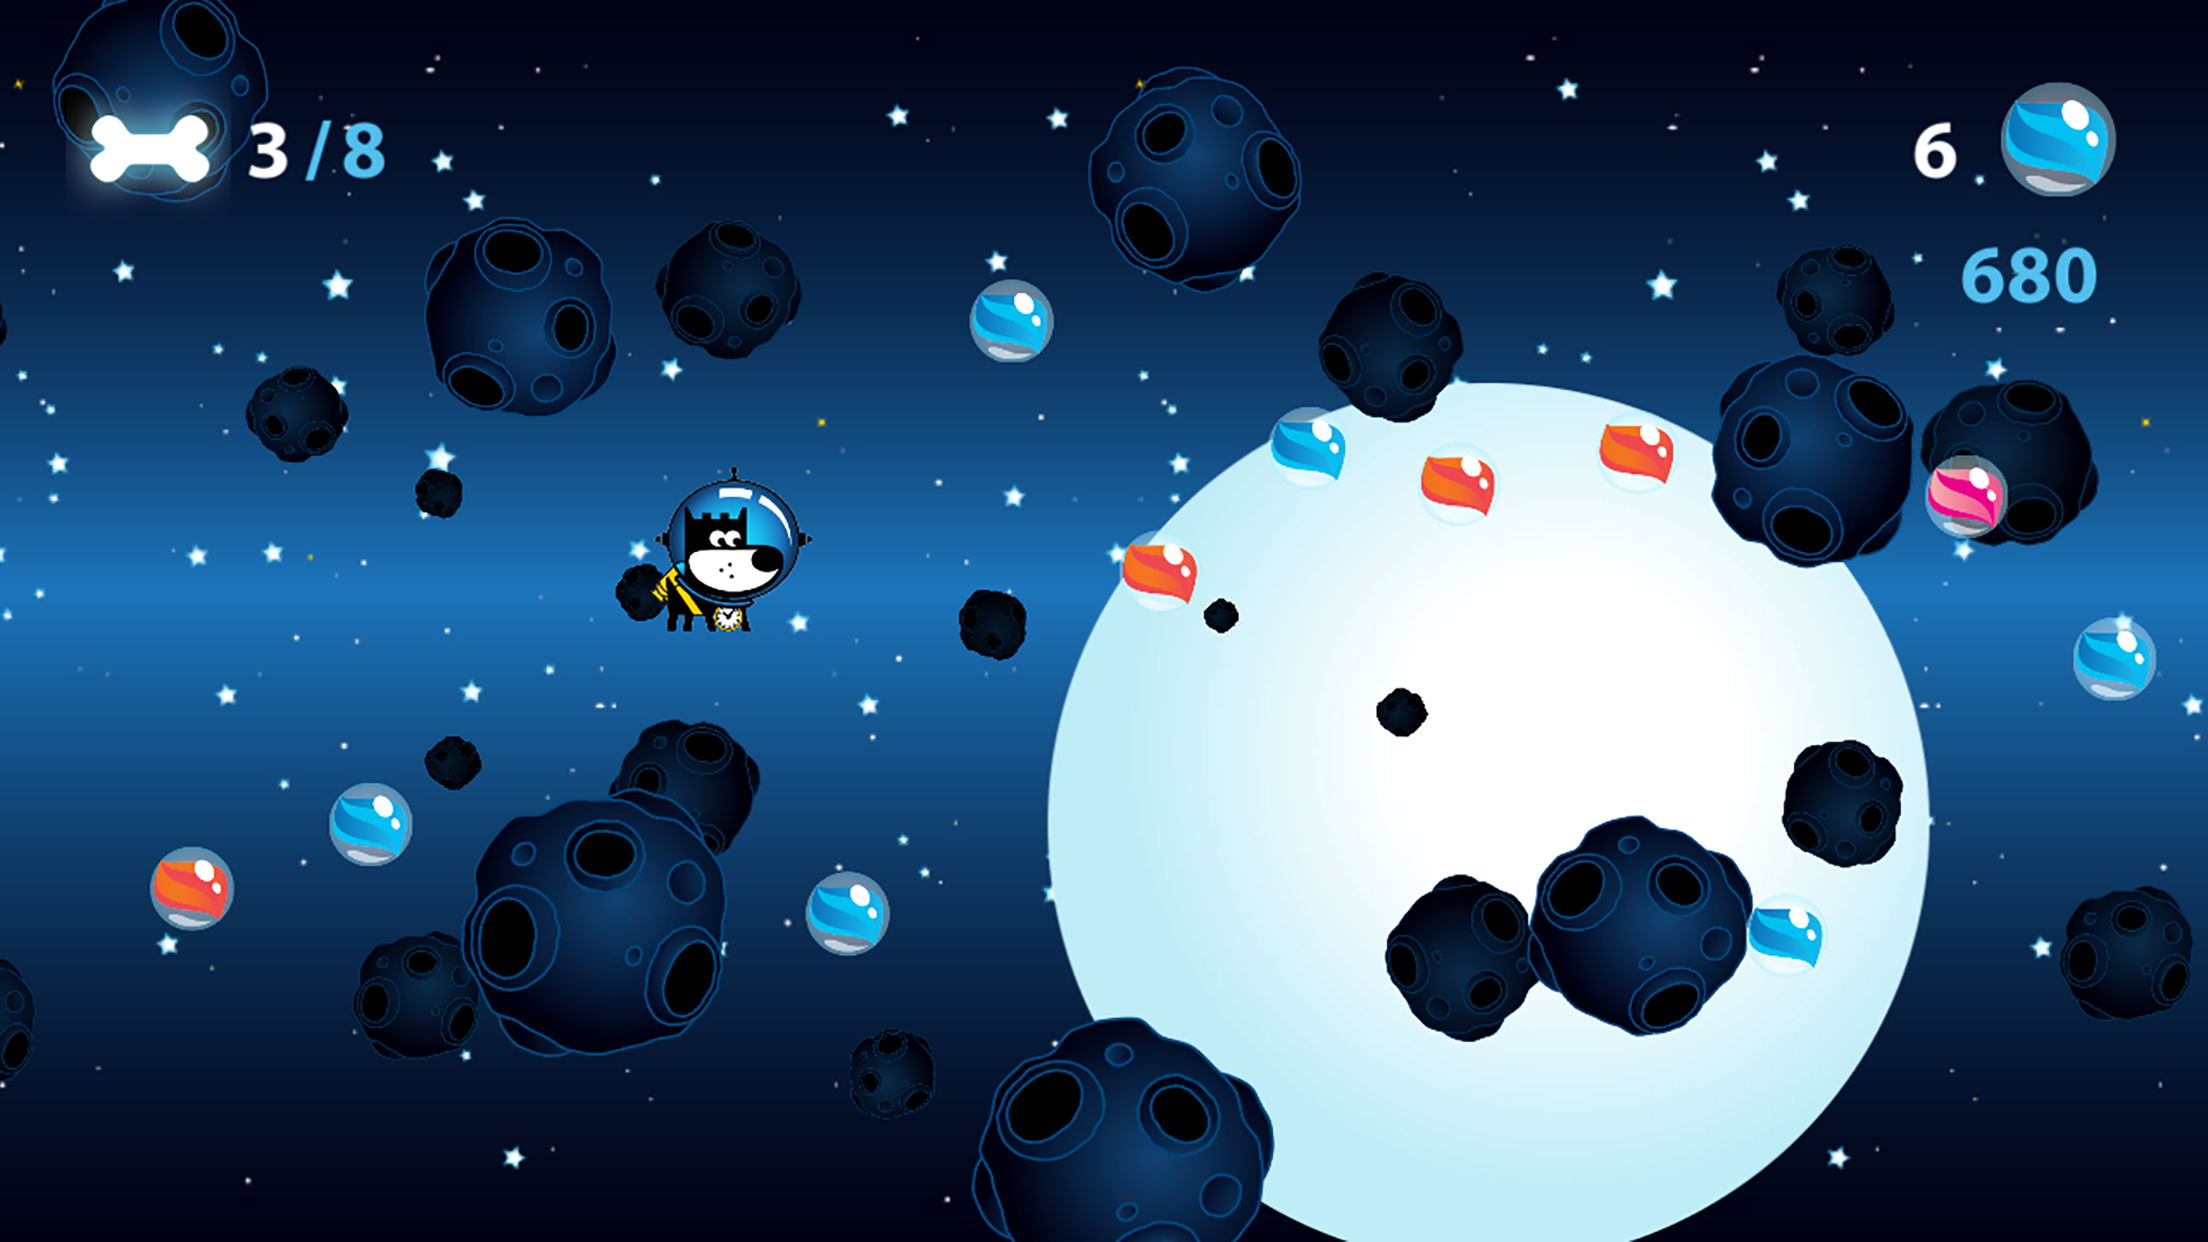 GOOD-PUPPY-Space-Walk-Infinite-Runner-Free-Download-8.png